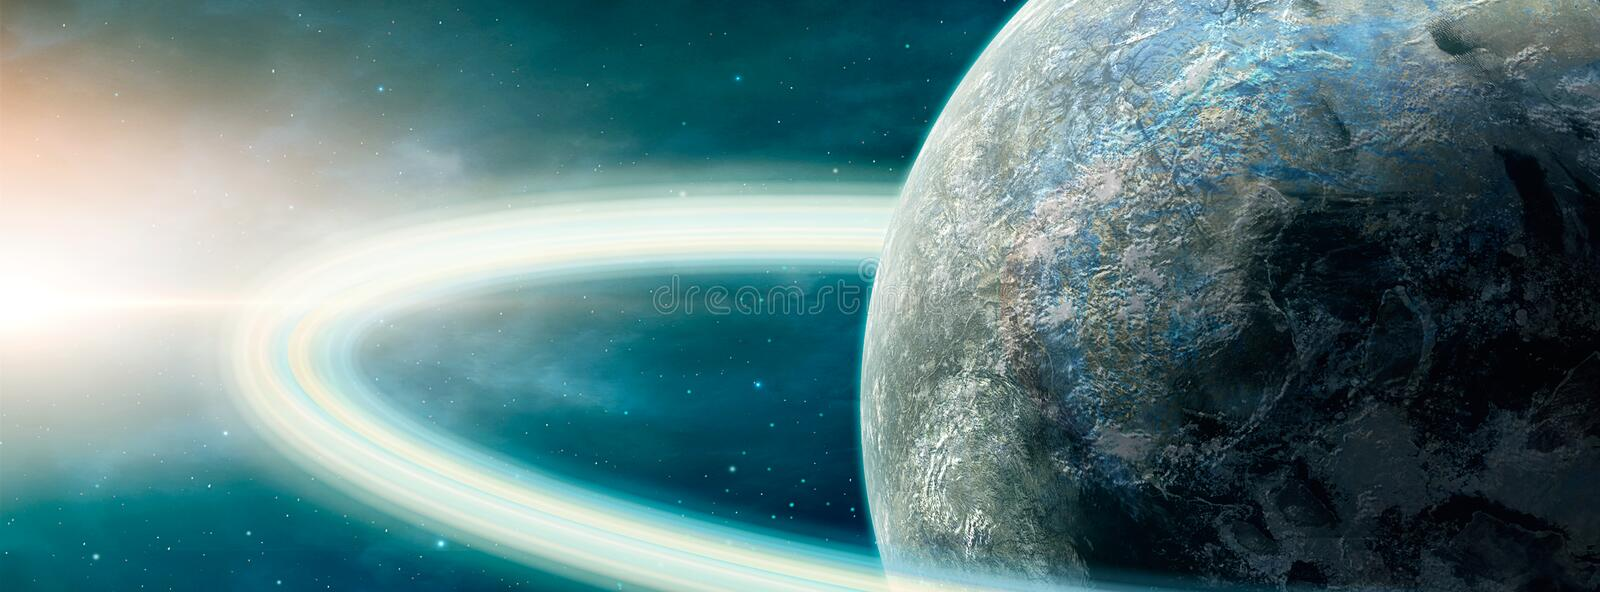 Panoramic space scene. Planet with ring and nebula.. Elements furnished by NASA. 3D rendering.  royalty free illustration